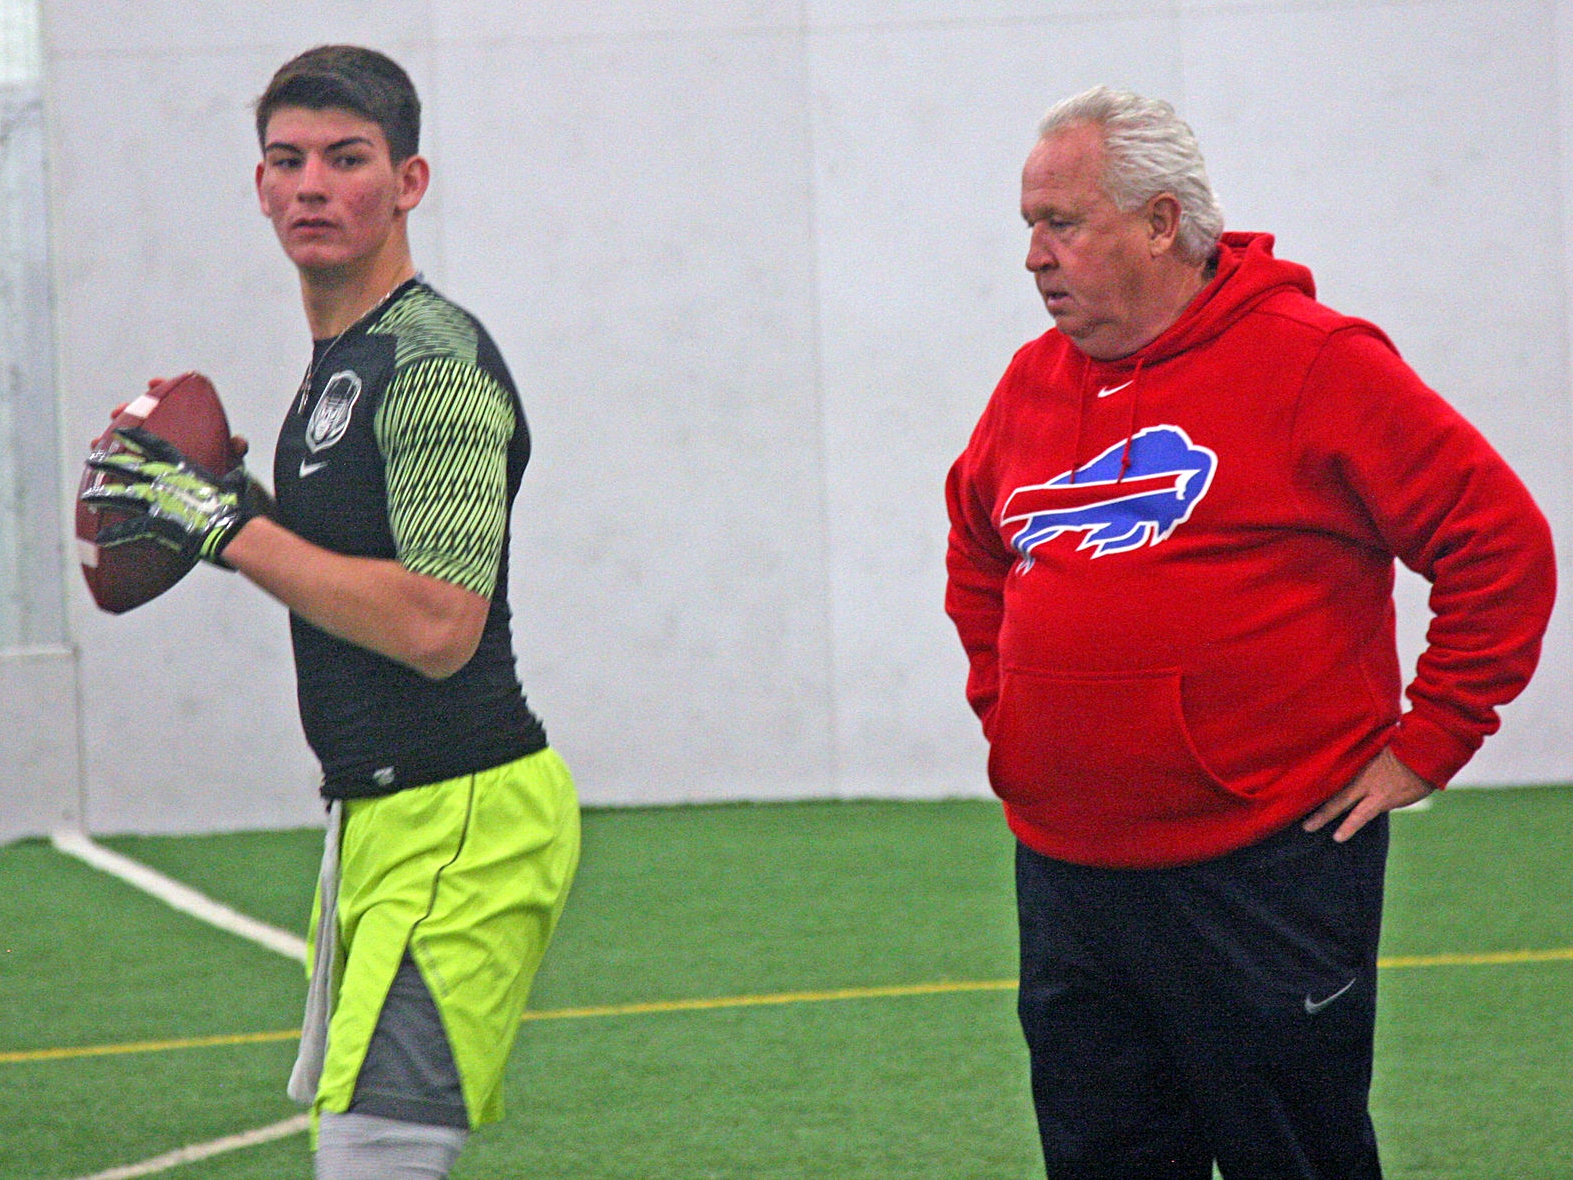 2017 QB Brandon George with Buffalo Bills QB Consultant Joe Dickinson